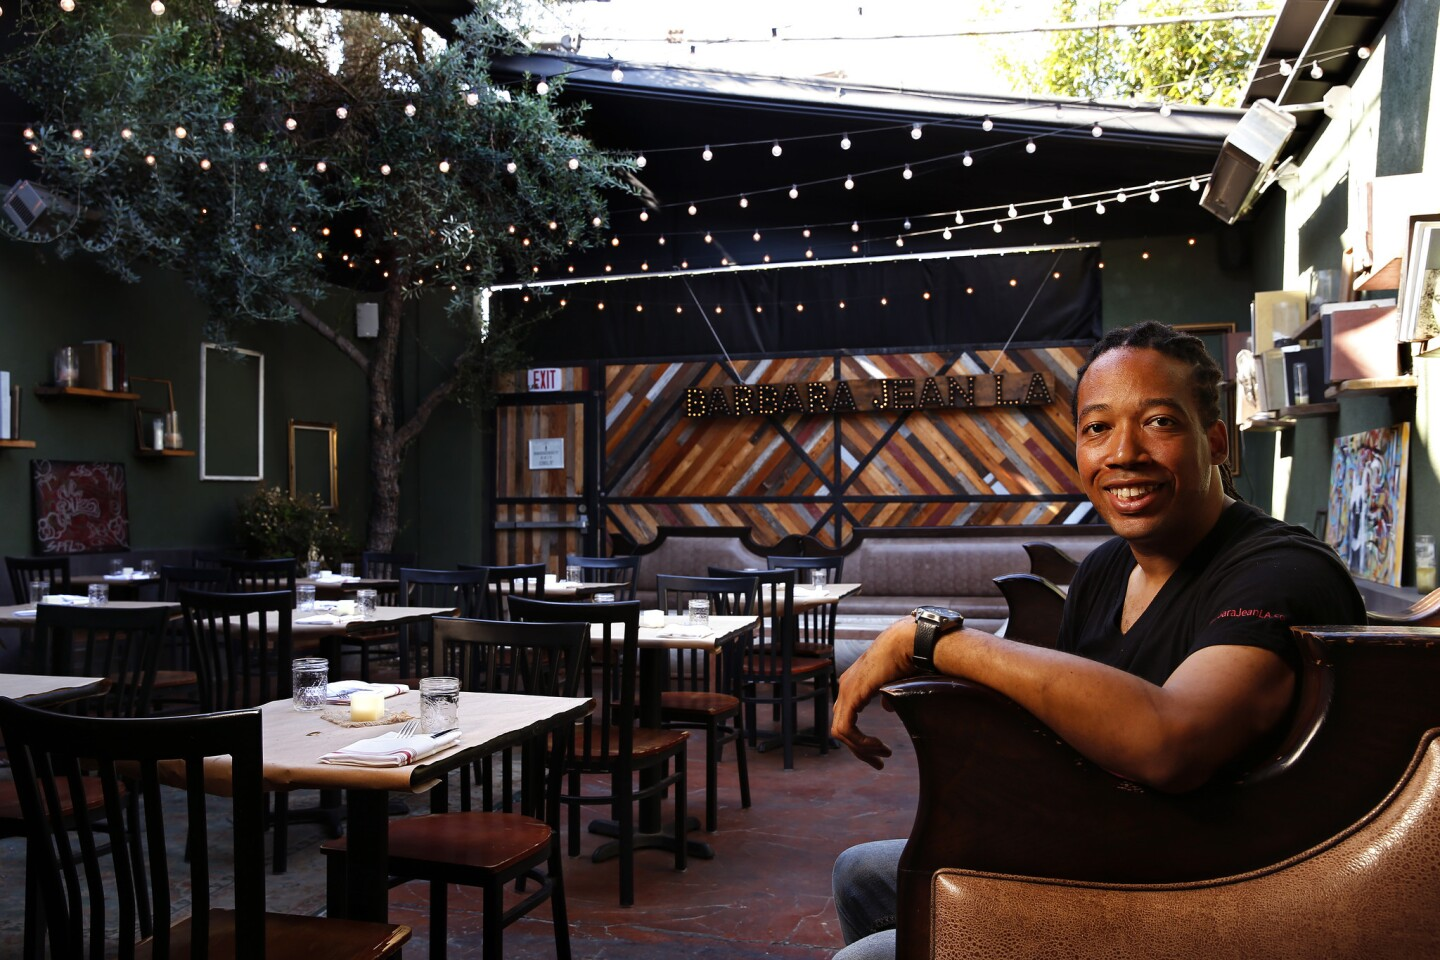 The story of Barbara Jean, the little restaurant that could